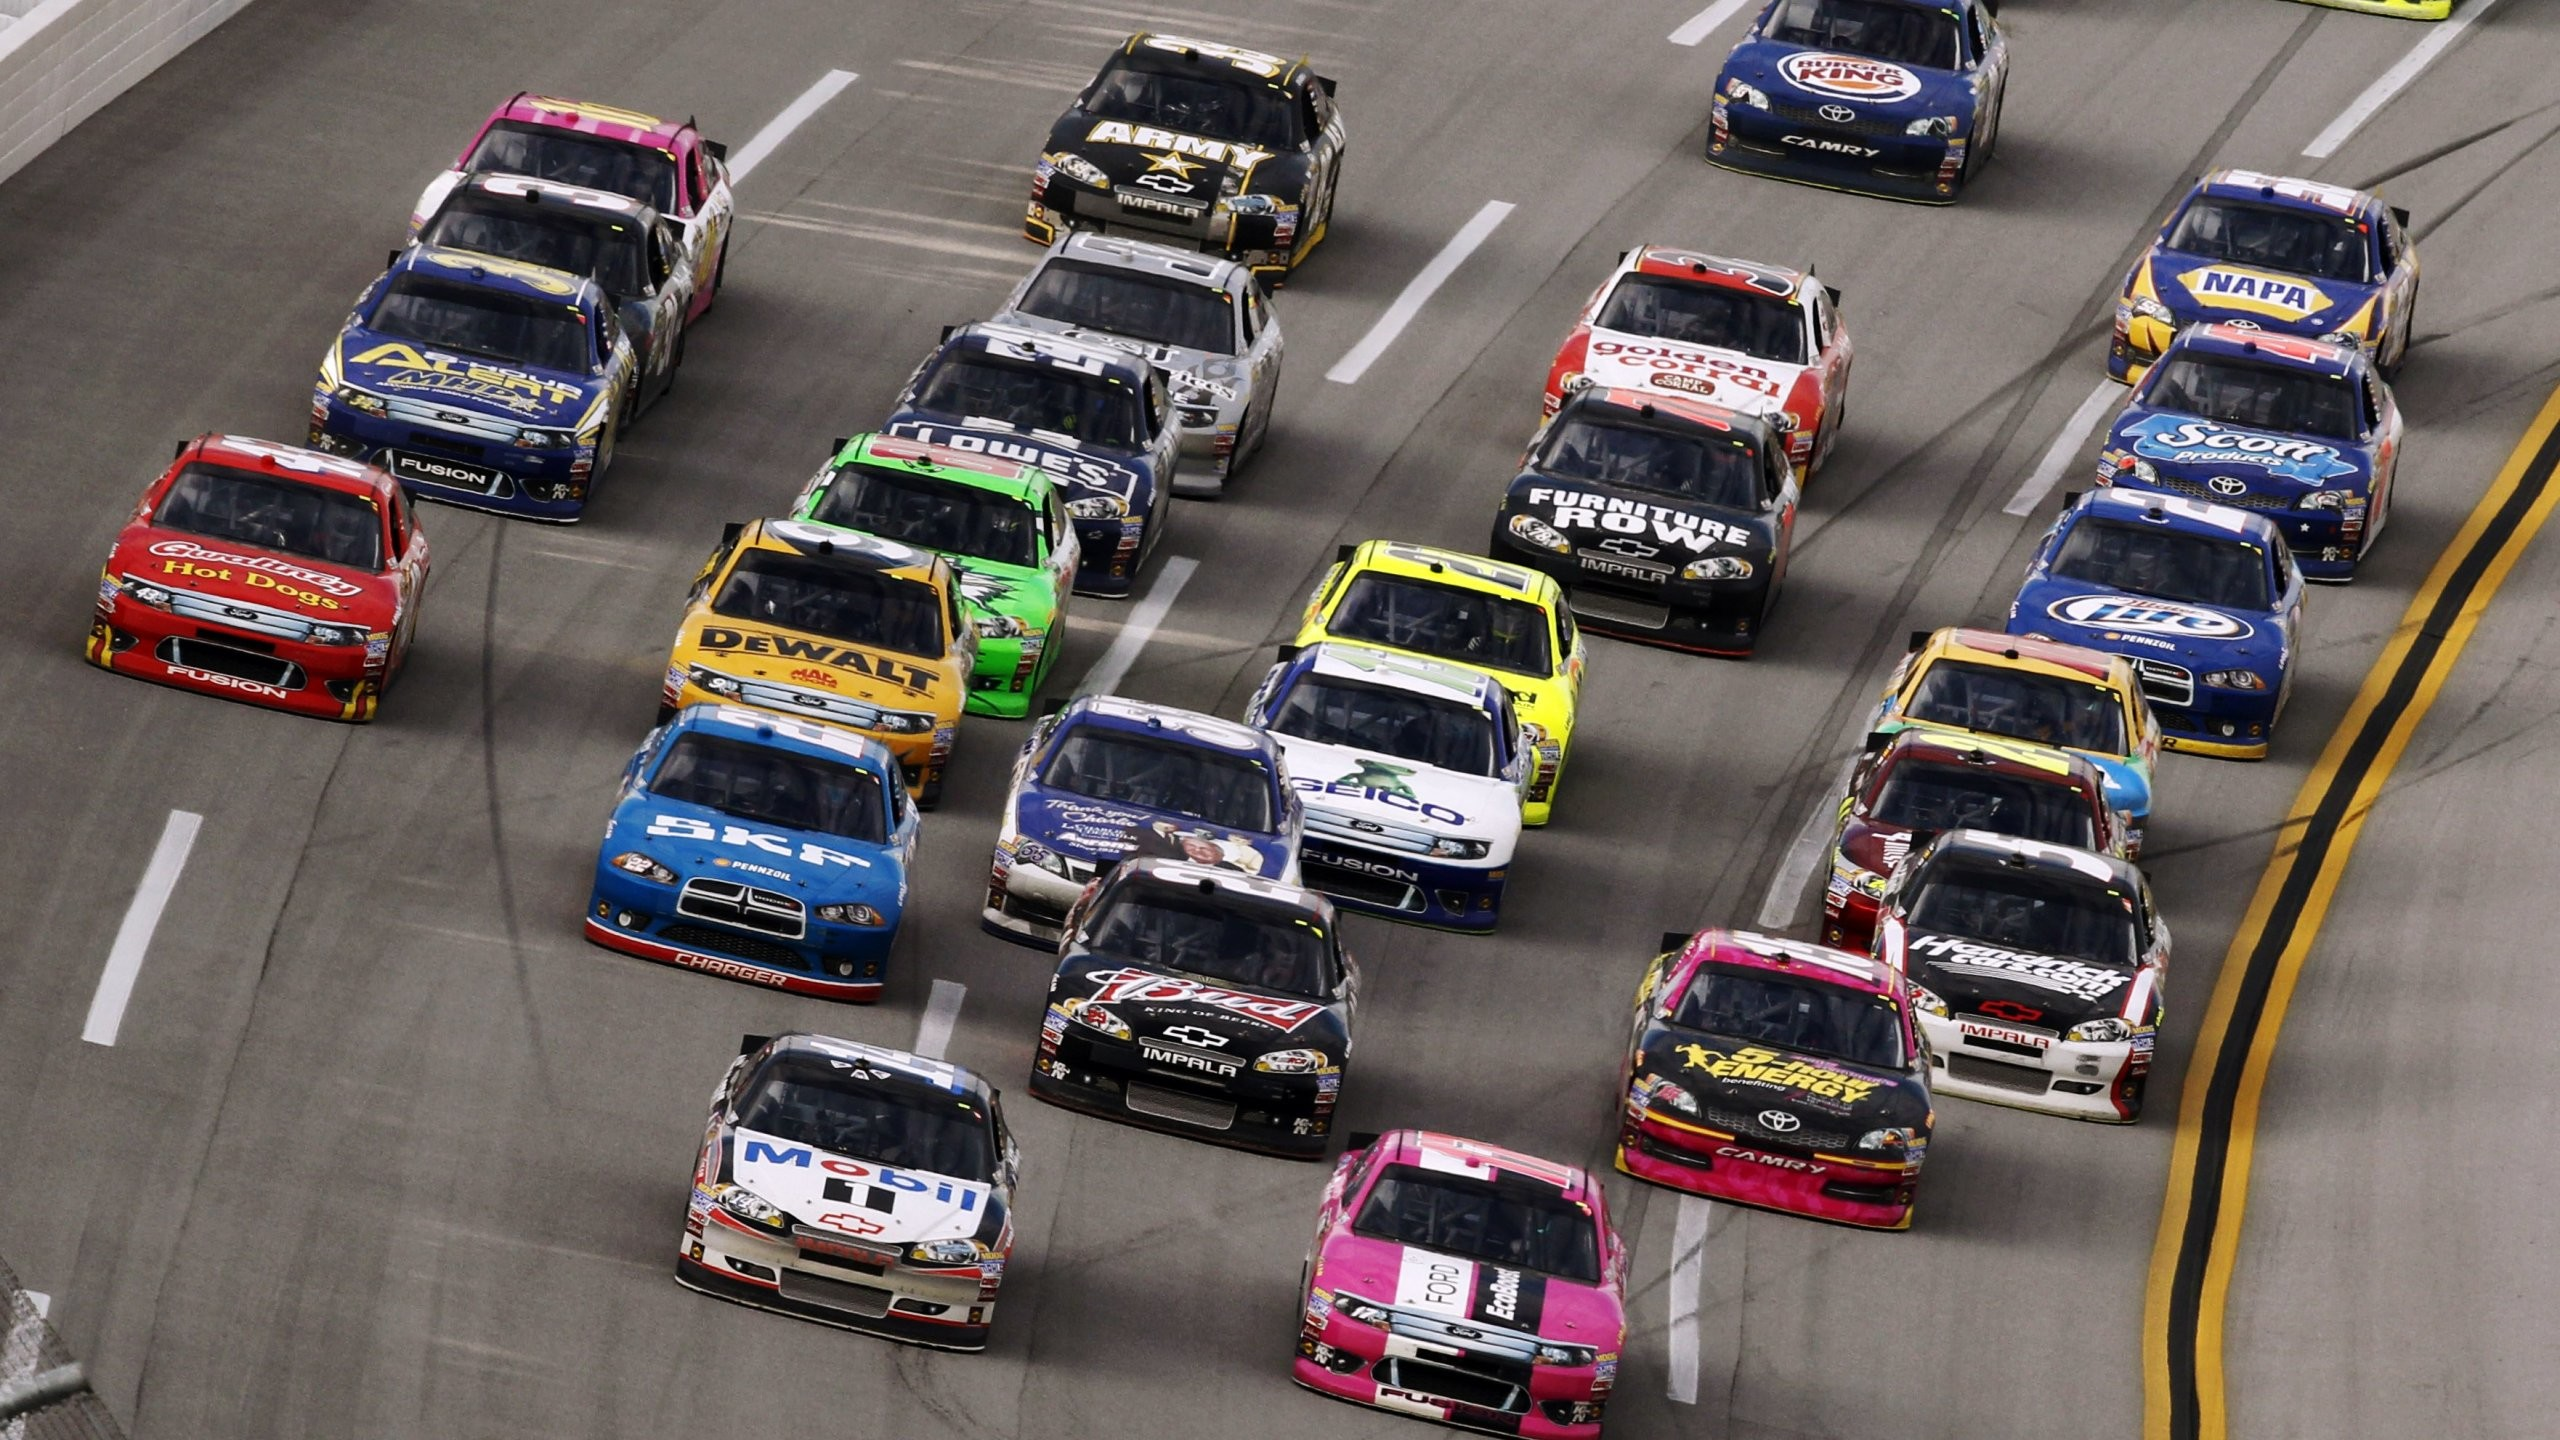 Nascar wallpapers 56 images 2560x1440 wallpaper hd nascar photo pic wpe007166 voltagebd Image collections